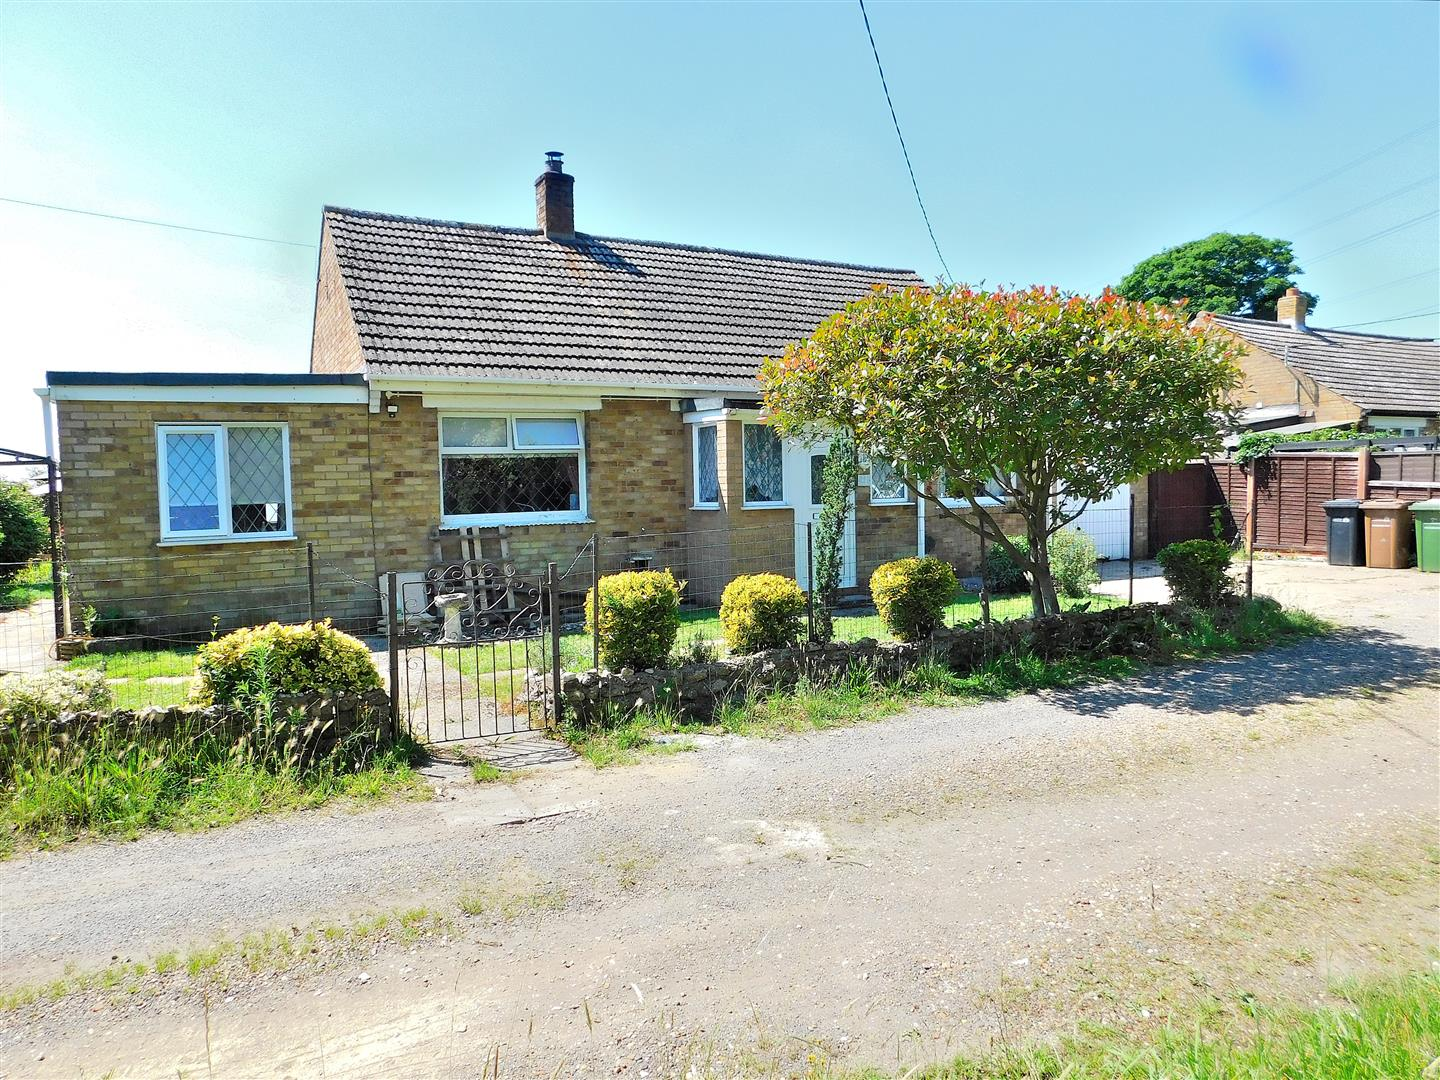 3 bed detached bungalow for sale in King's Lynn, PE33 0BG - Property Image 1